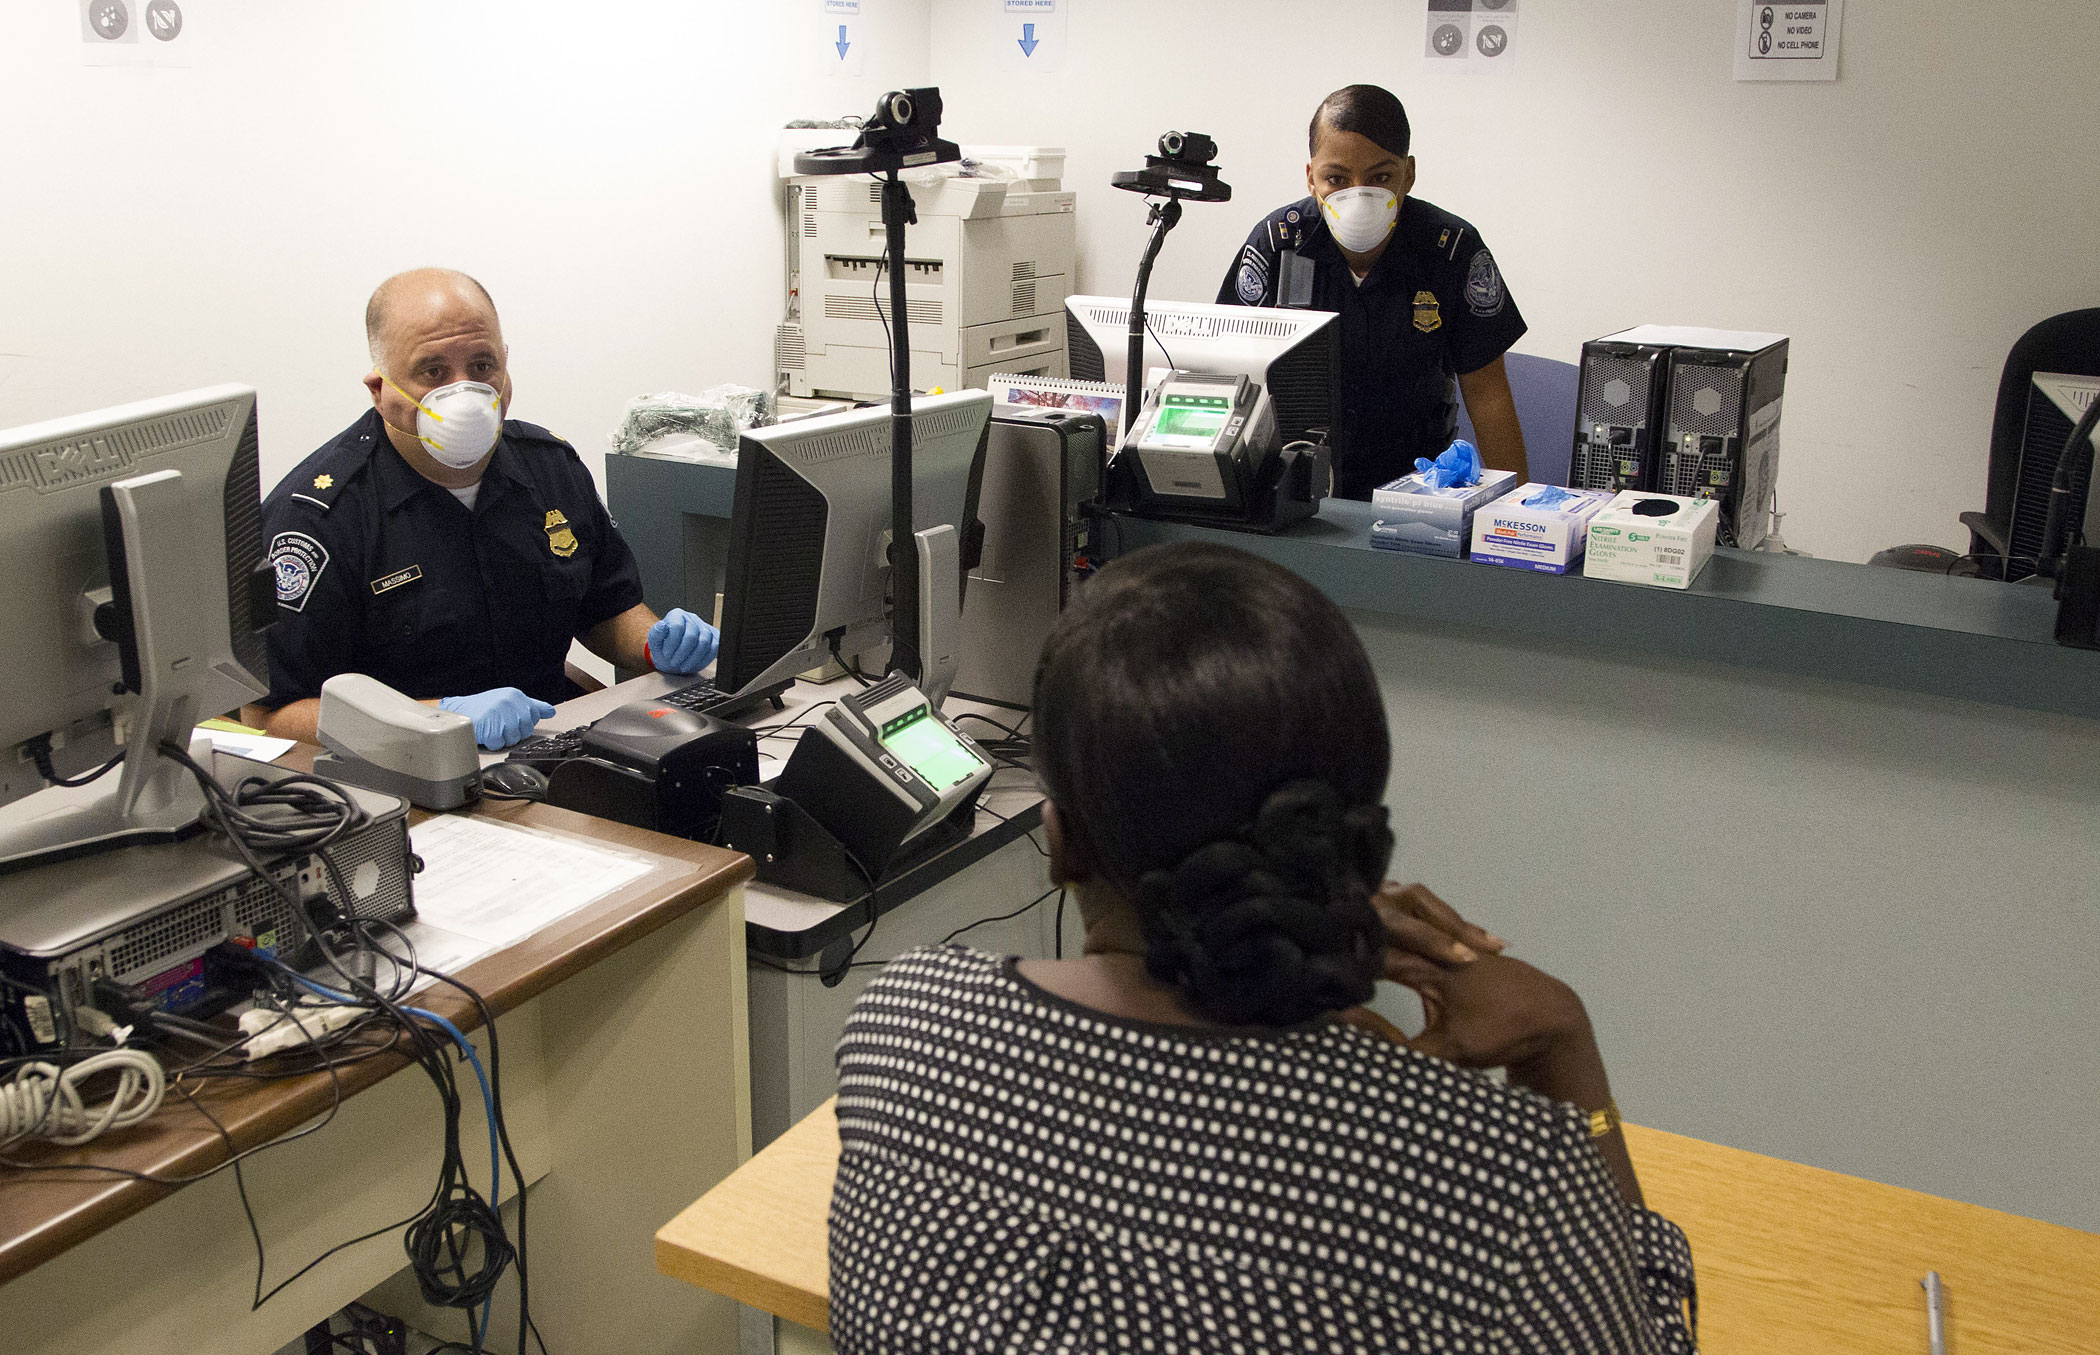 U.S. Customs and Border Protection Officers conduct enhanced screening at JFK International Airport in New York City on October 11, 2014.